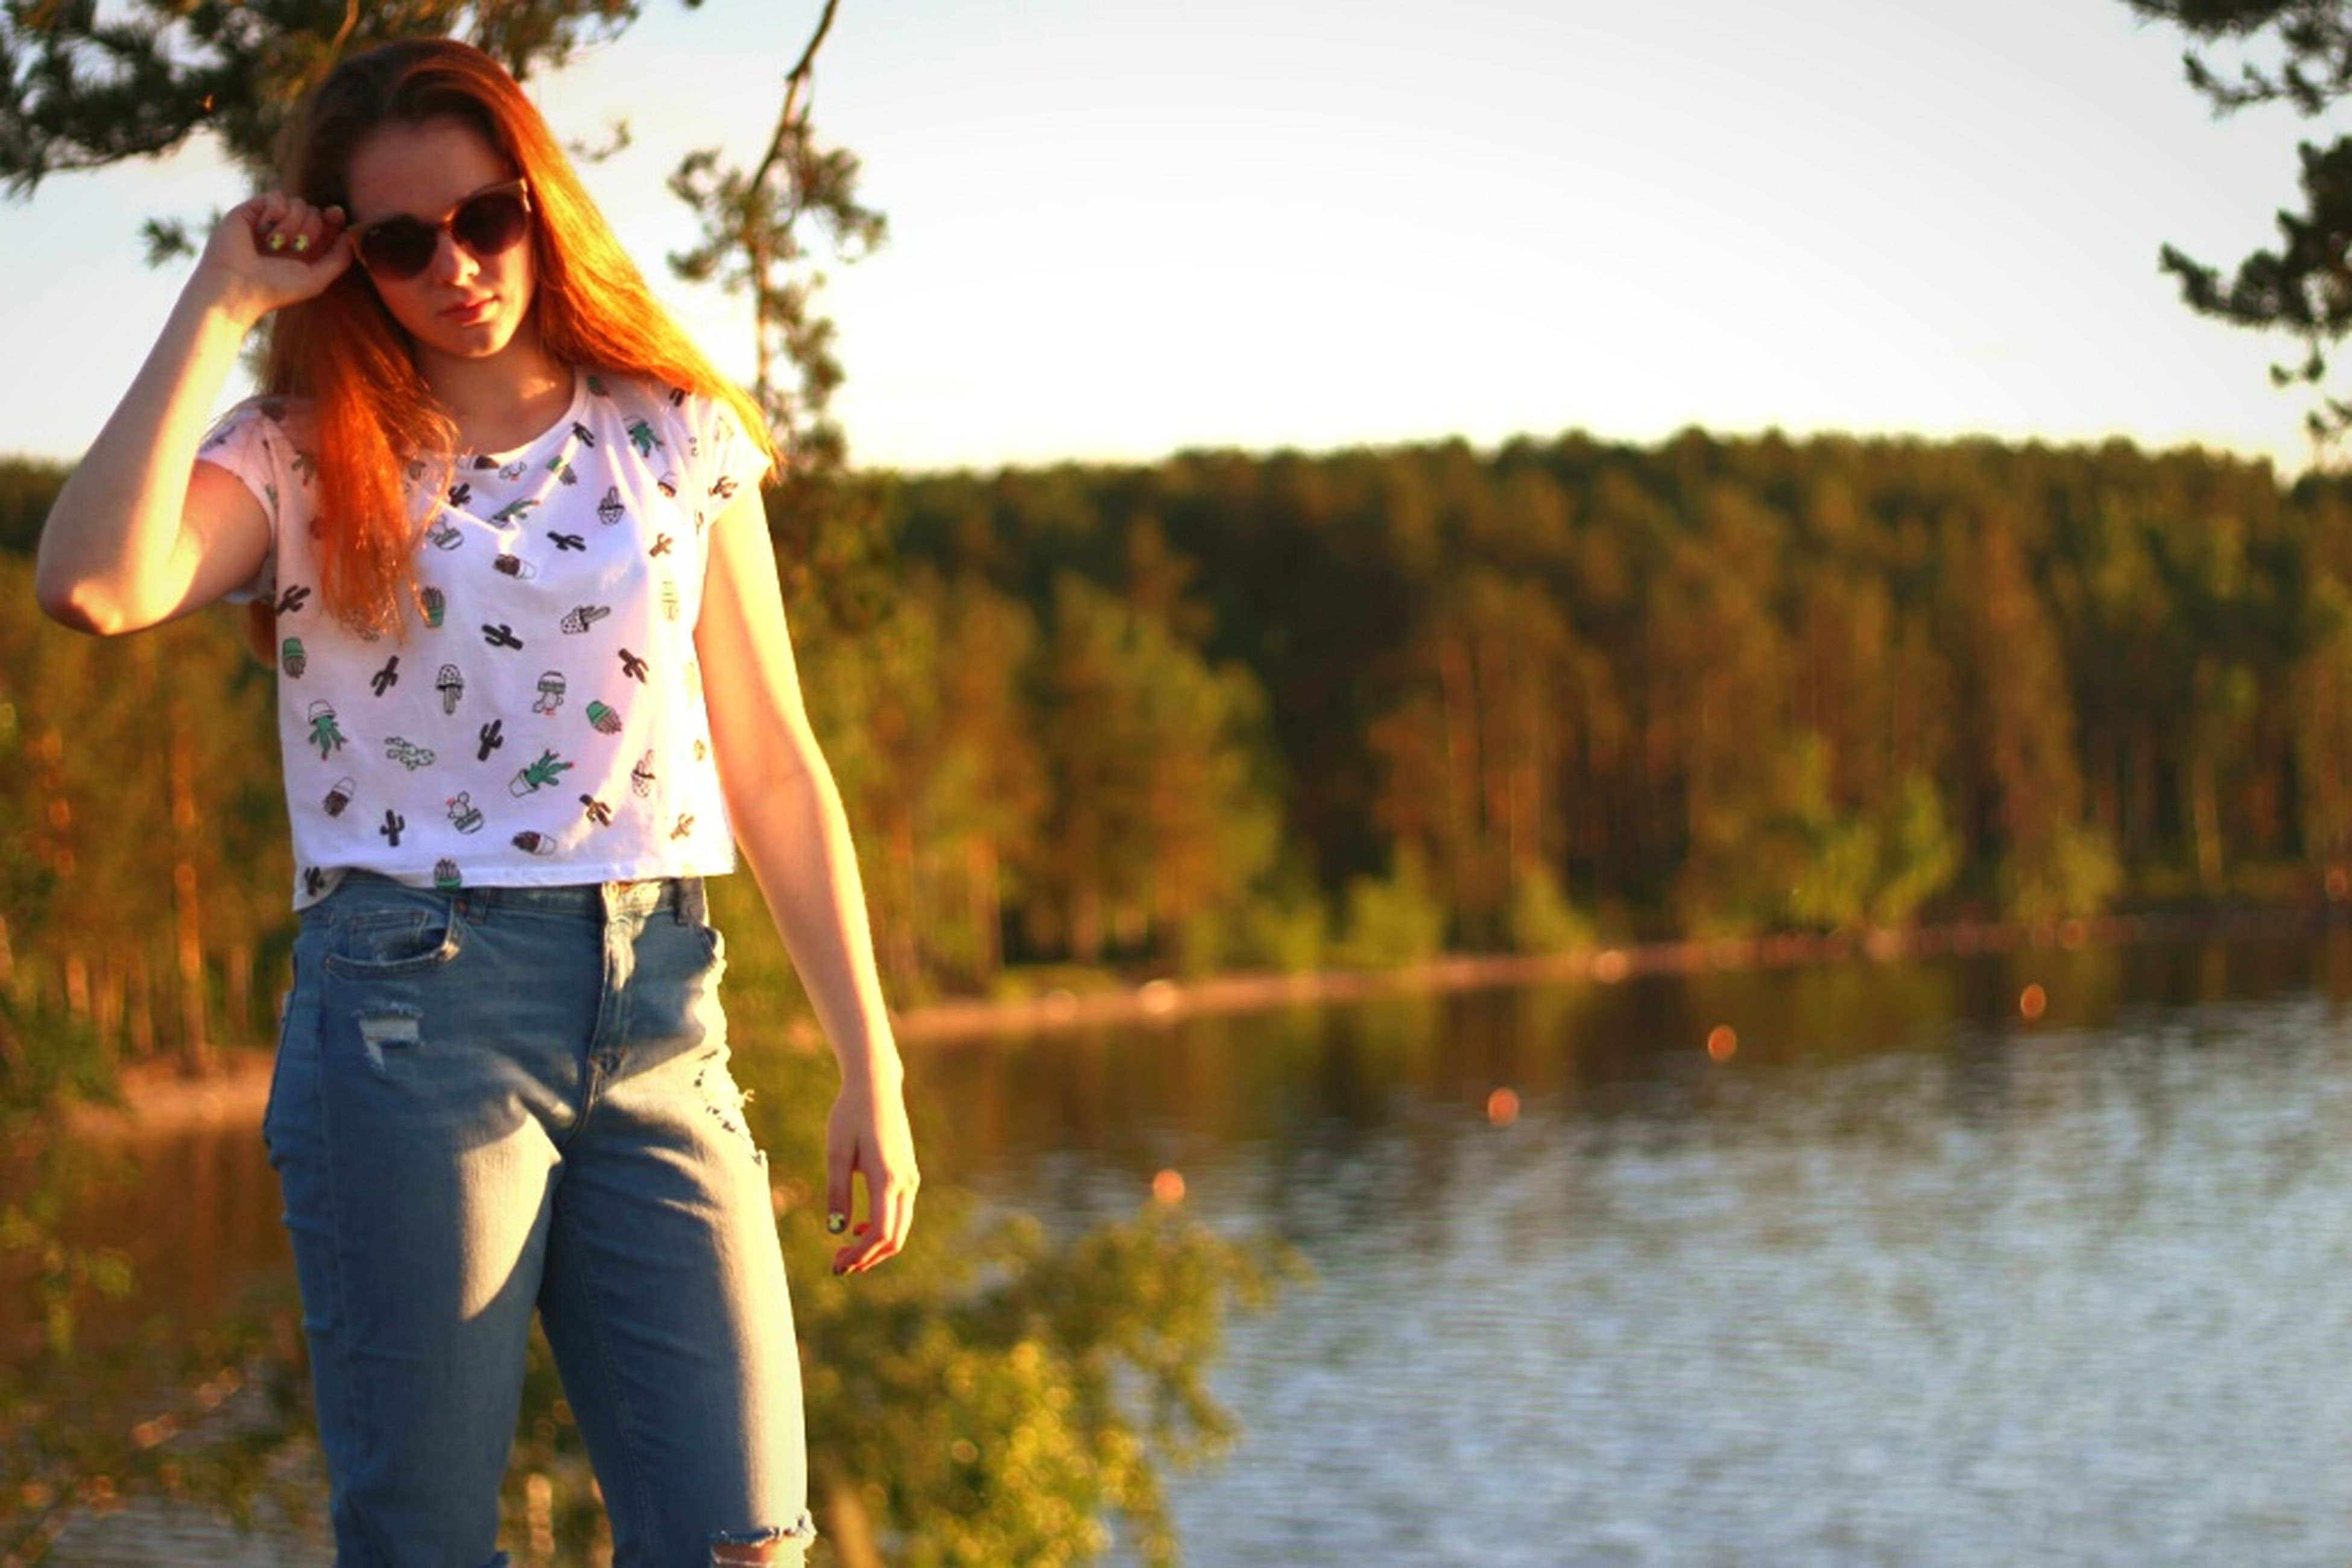 lake, water, tree, outdoors, casual clothing, nature, one person, reflection, leisure activity, day, long hair, focus on foreground, standing, young adult, one woman only, one young woman only, sunset, adult, only women, people, grass, full length, young women, beauty in nature, adults only, sky